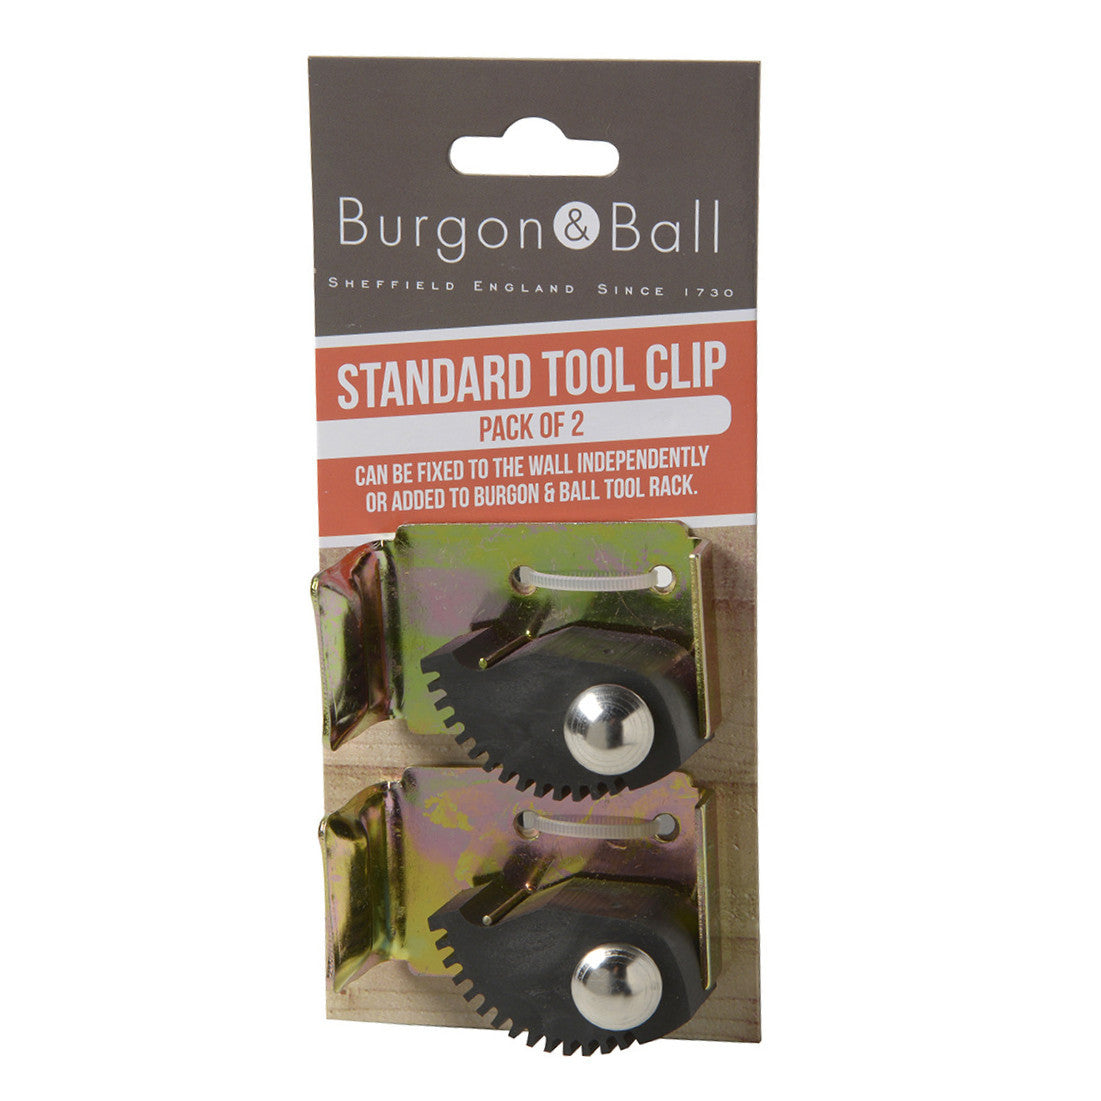 Standard Tool Clips - 2 Pack - The Potting Shed Garden Tools